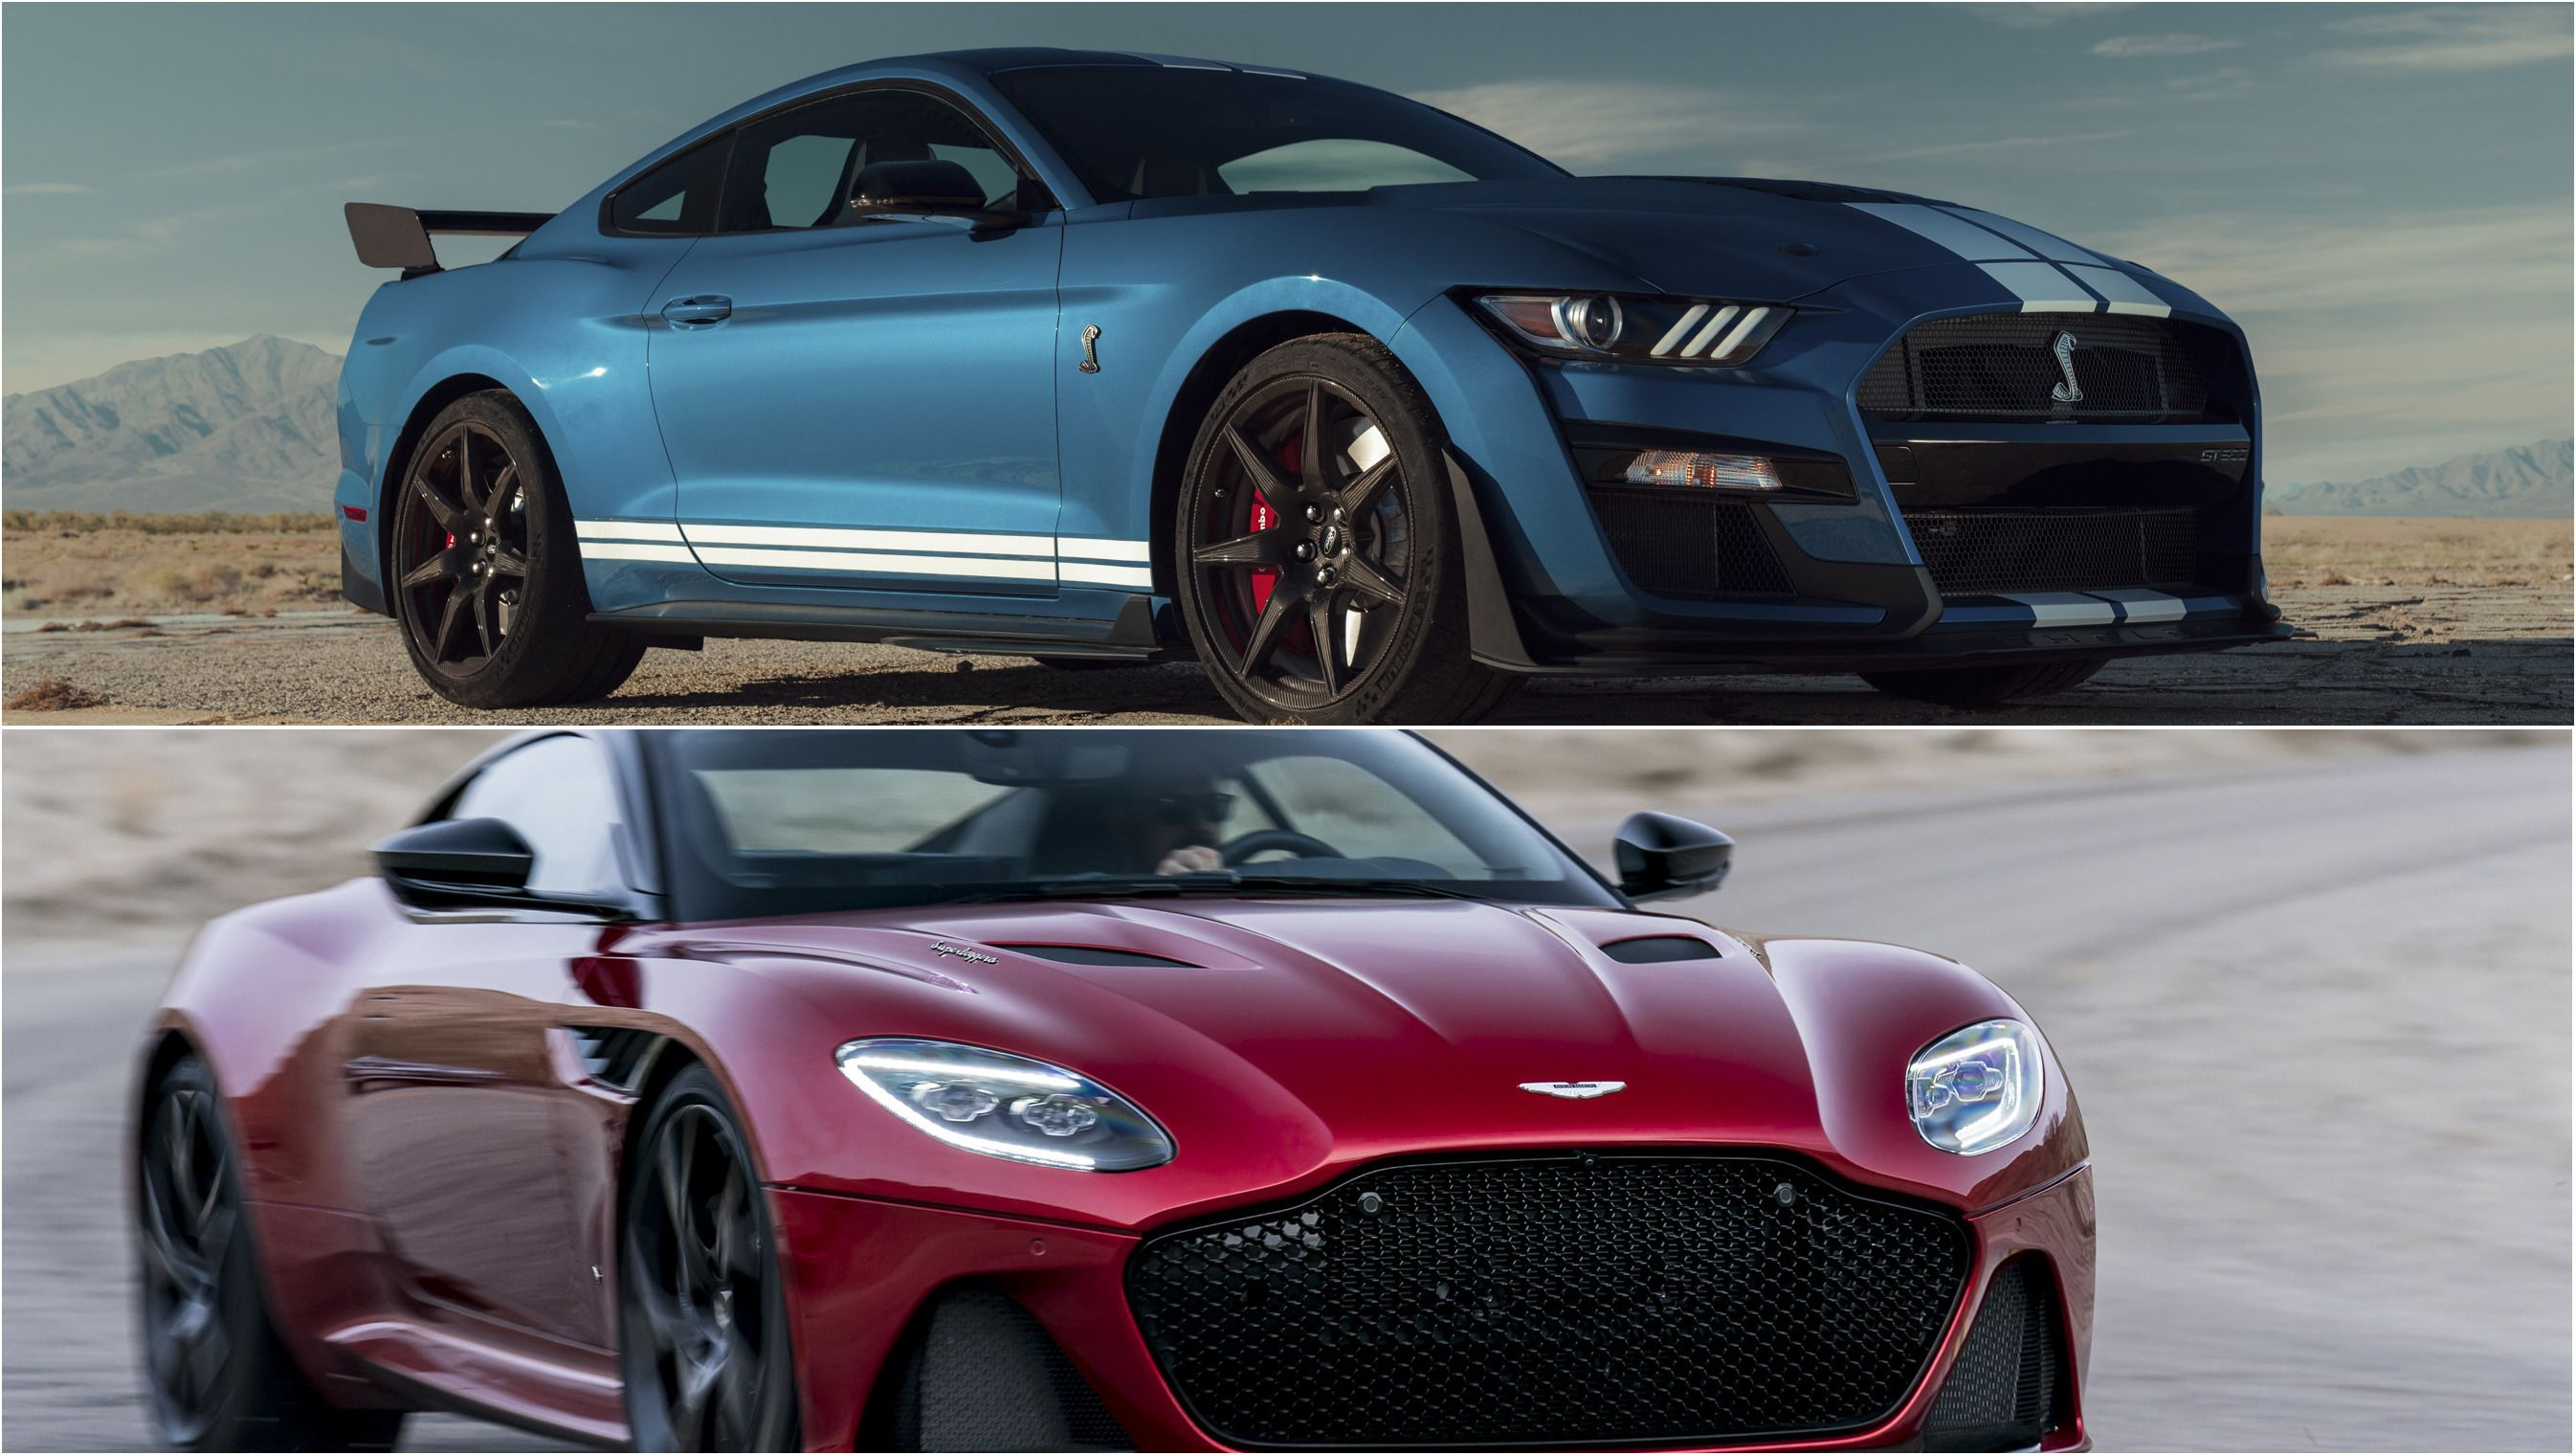 2020 Ford Mustang Shleby Gt500 Vs 2019 Aston Martin Dbs